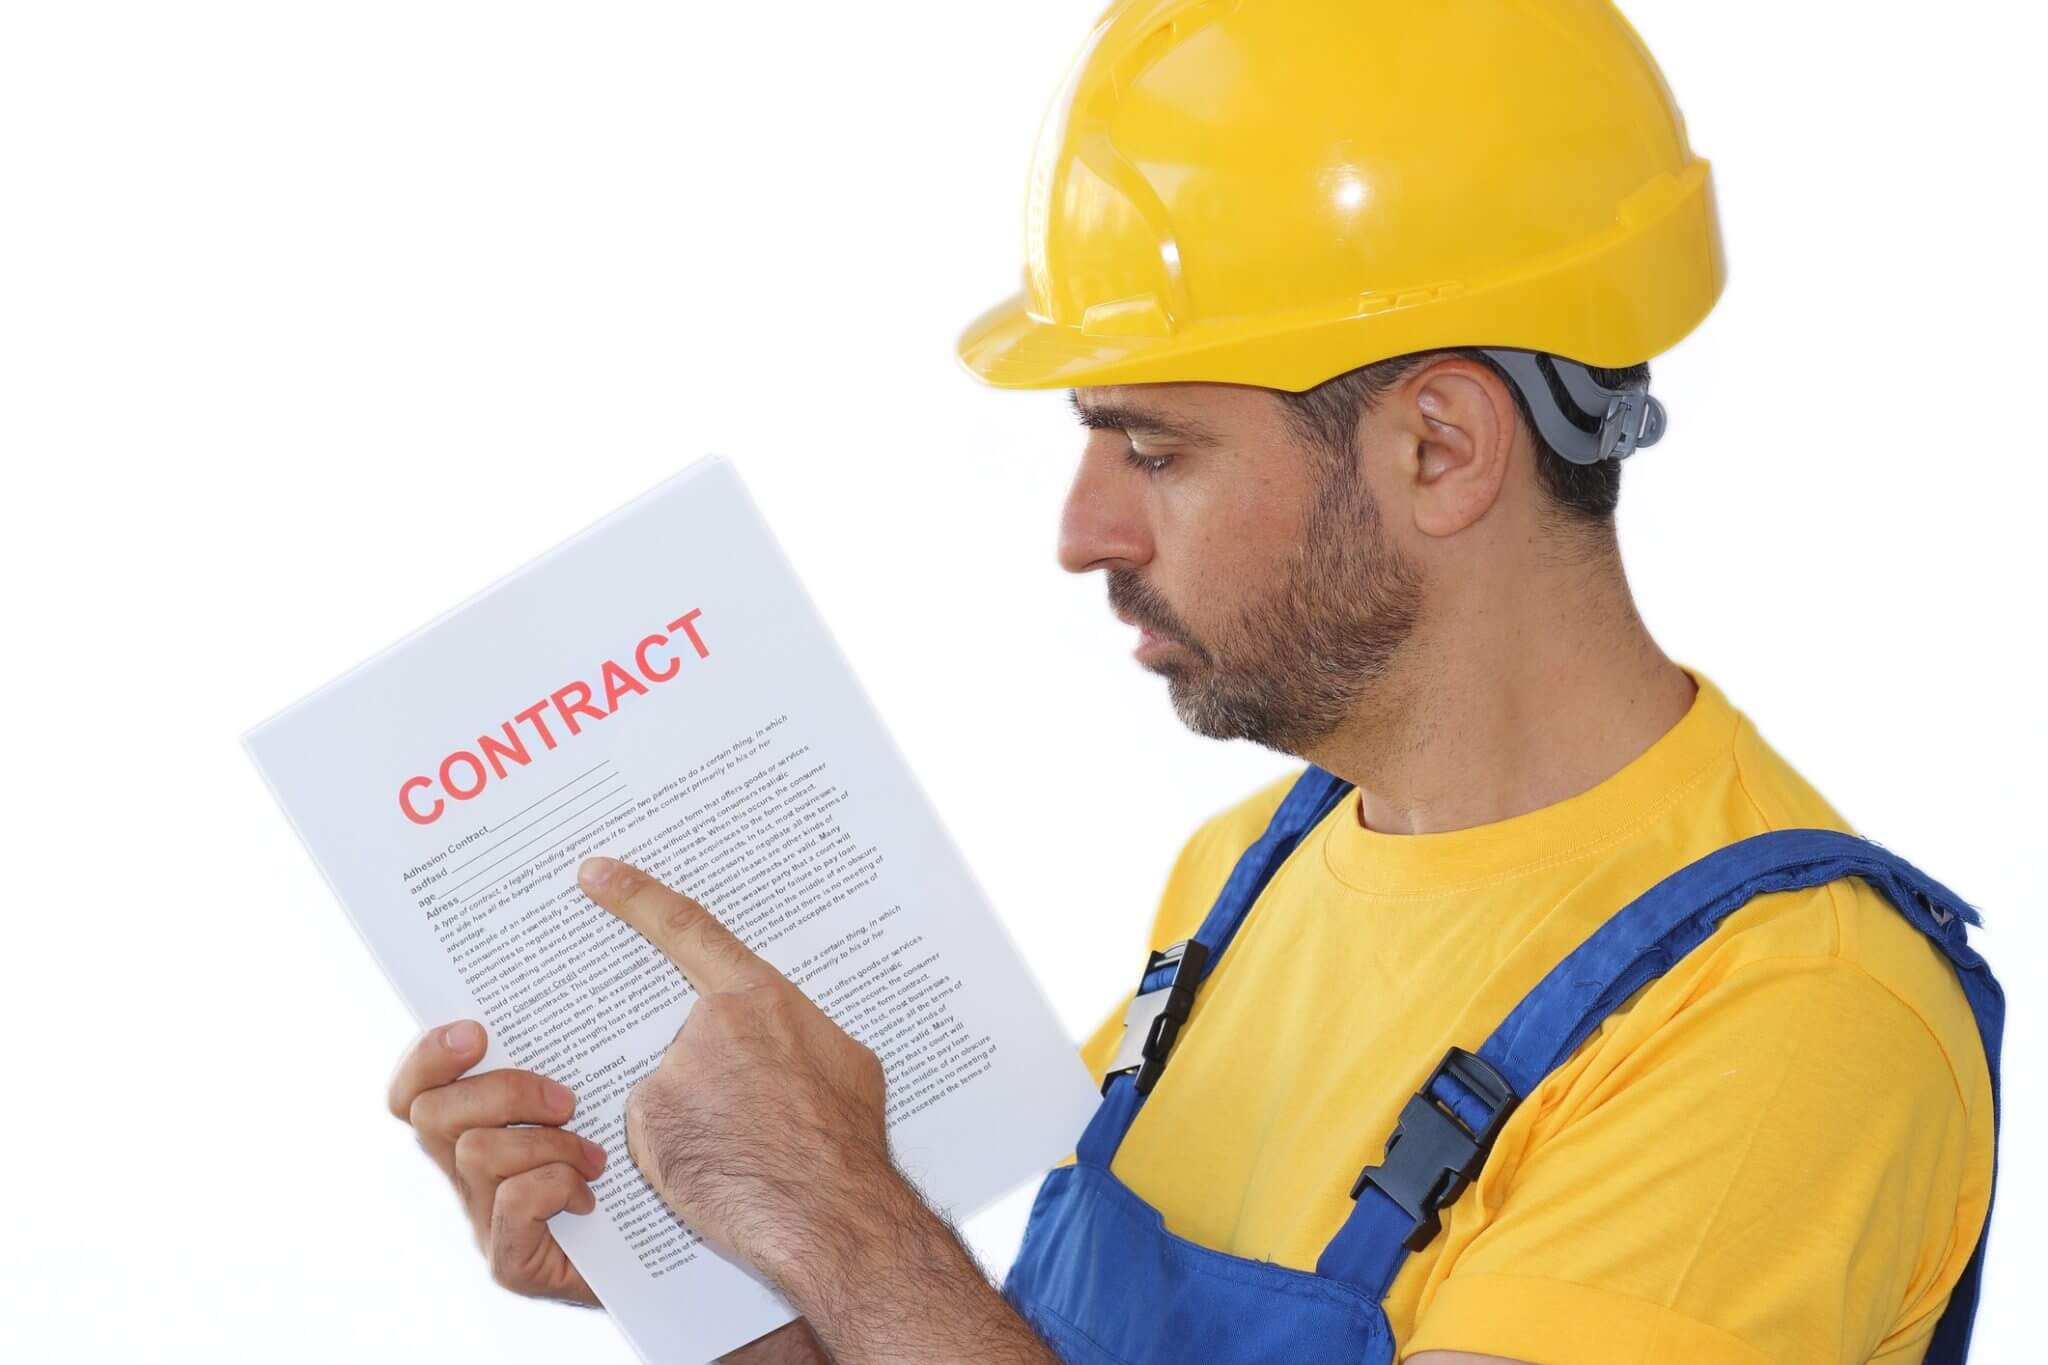 construction worker and contract image - liability insurance